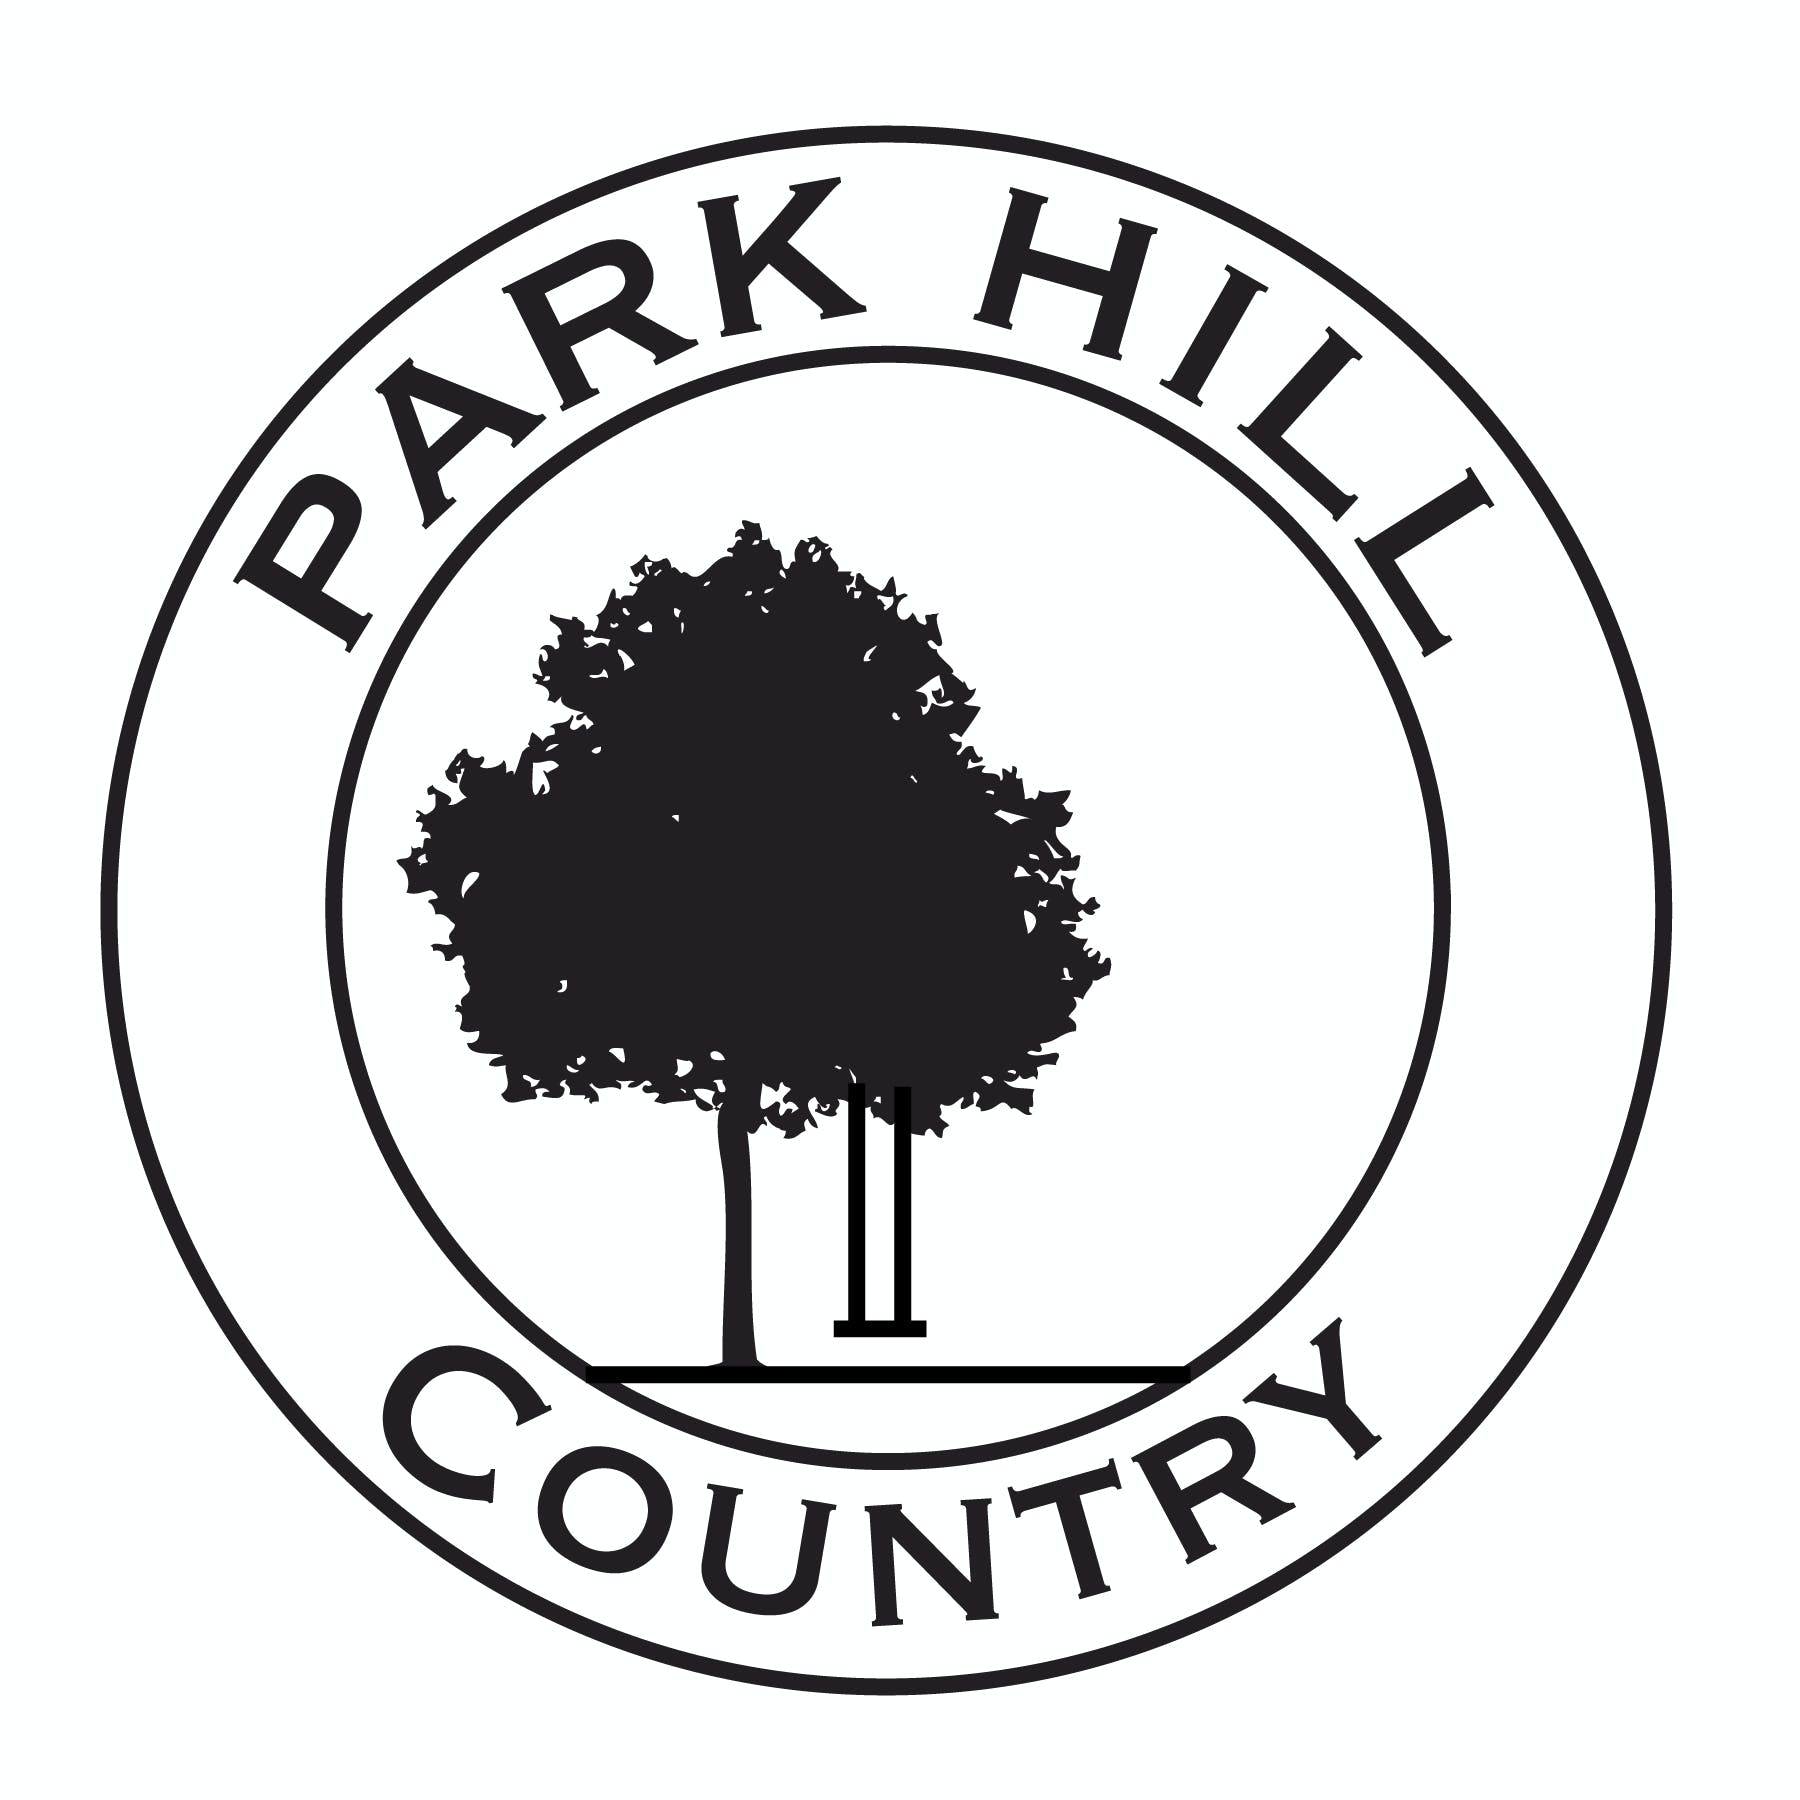 Park Hill Country